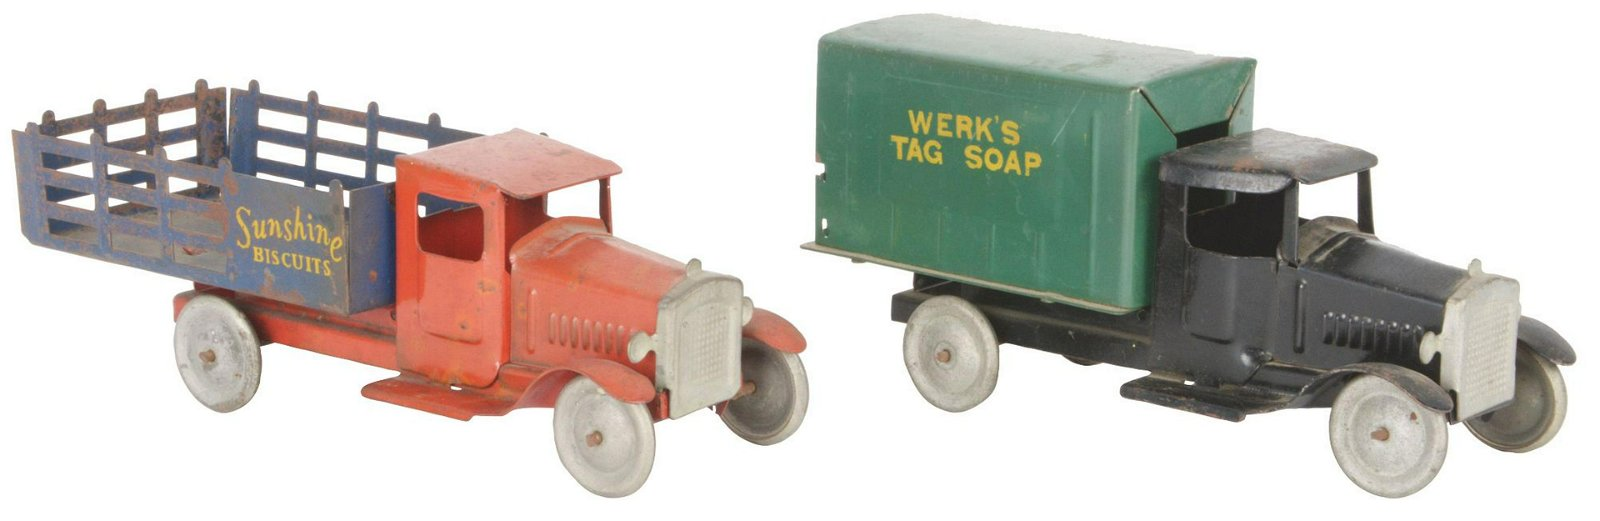 Lot of 2: Pressed Steel Metalcraft Advertising Trucks.